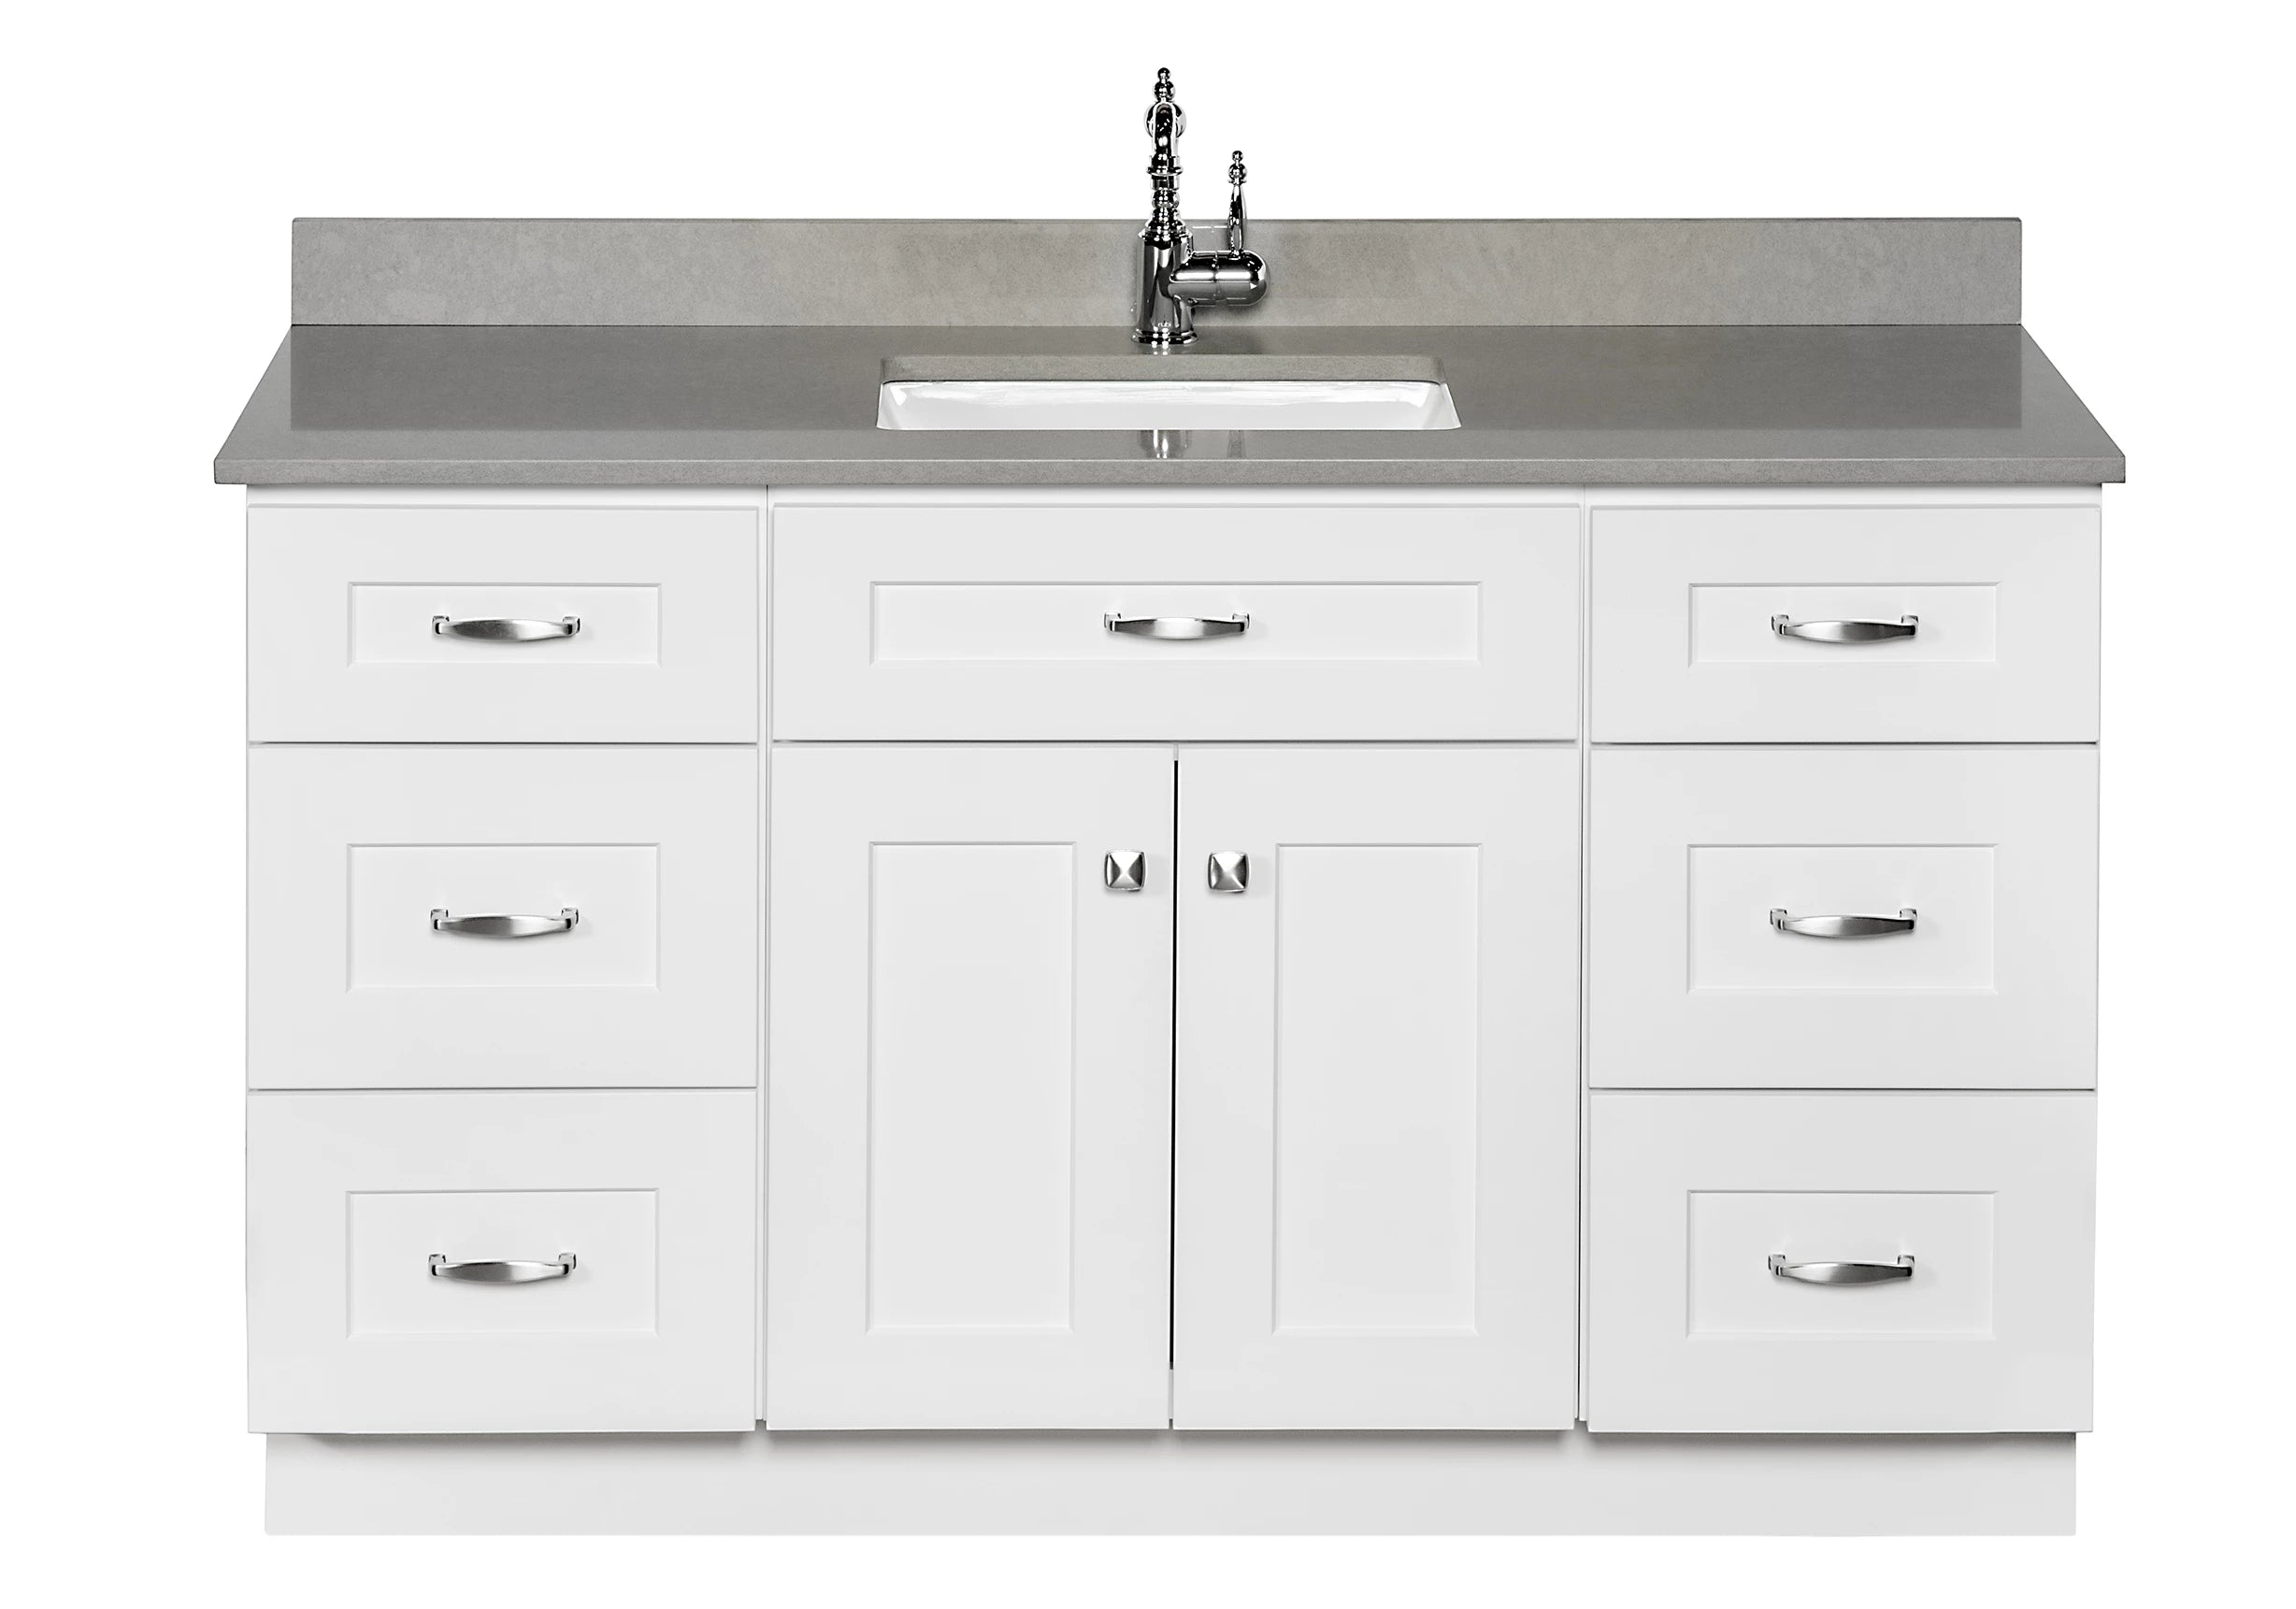 54 ̎ single sink maple wood bathroom vanity in white